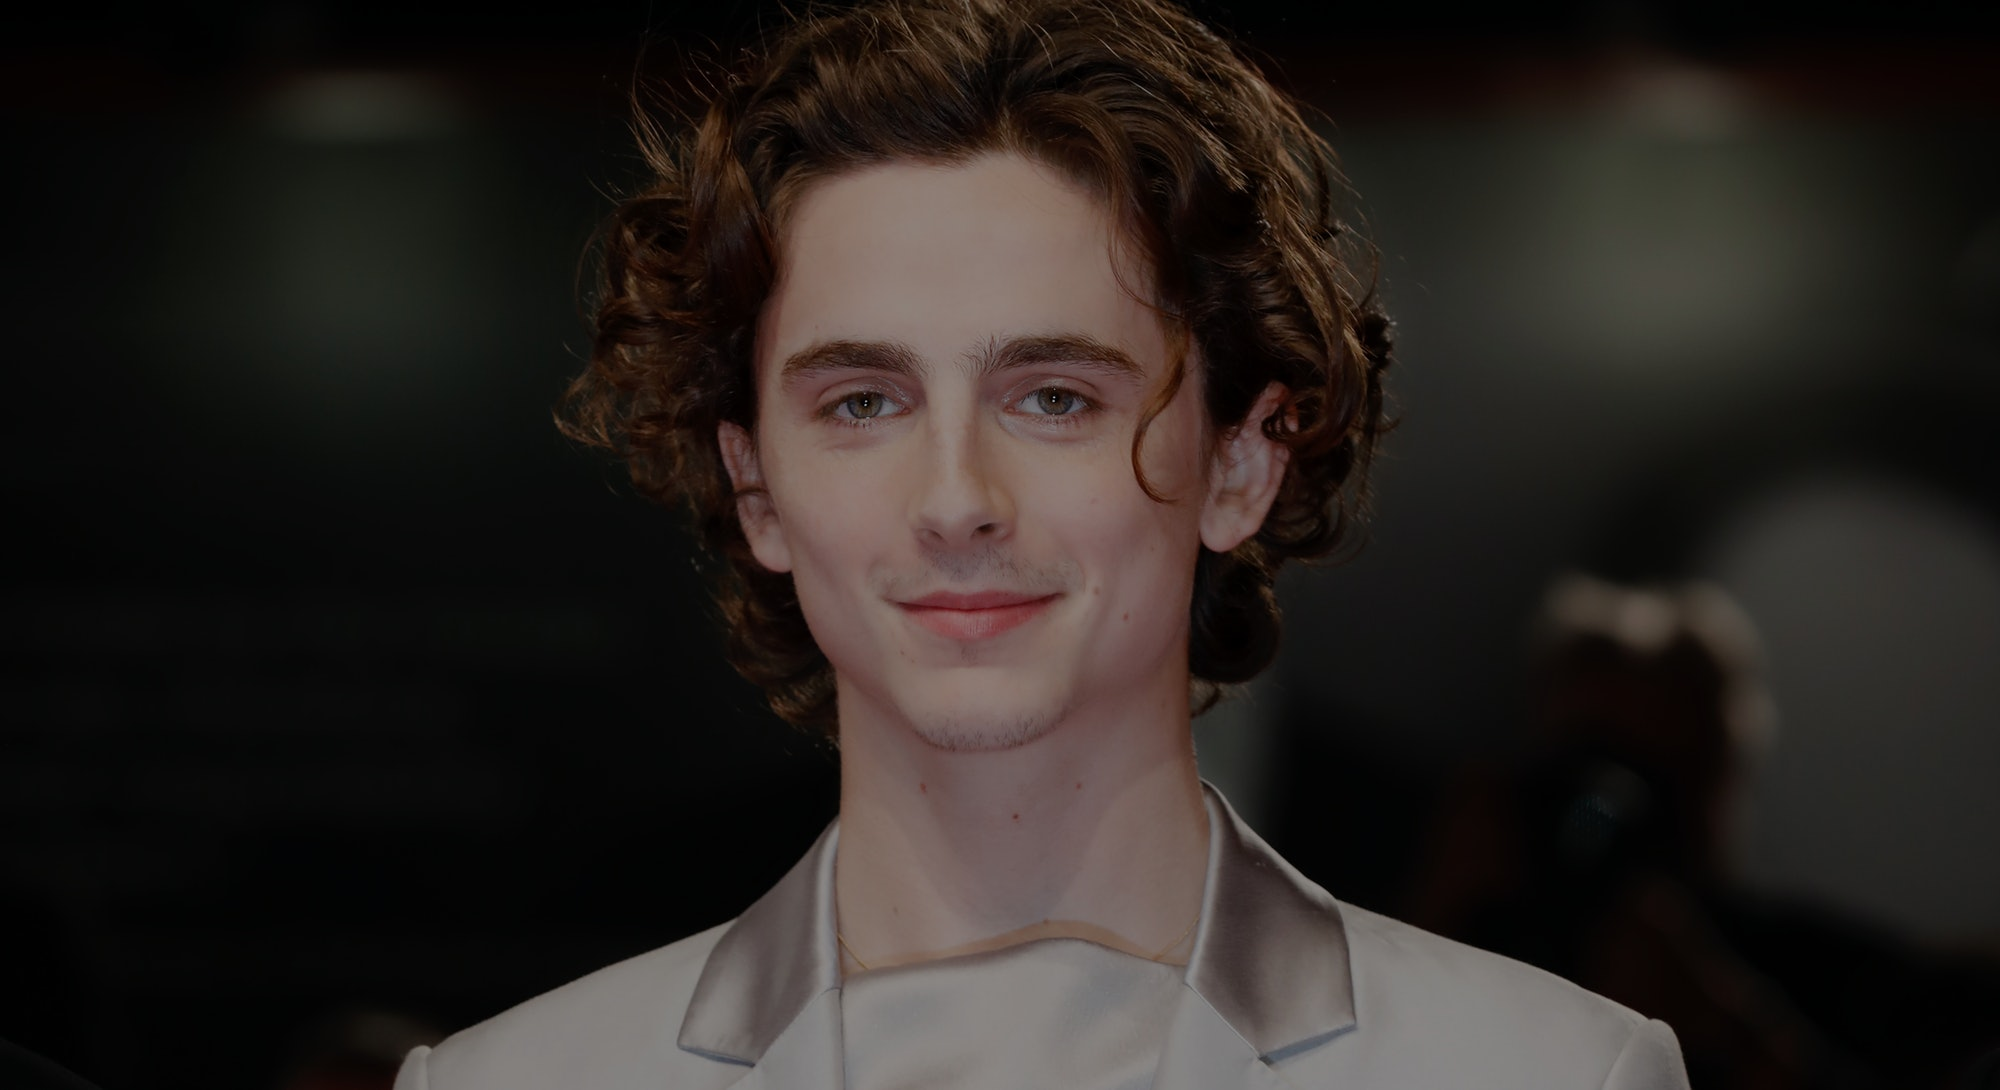 VENICE, ITALY - SEPTEMBER 2: (EDITORS NOTE: Image has been digitally retouched) Timothee Chalamet ar...